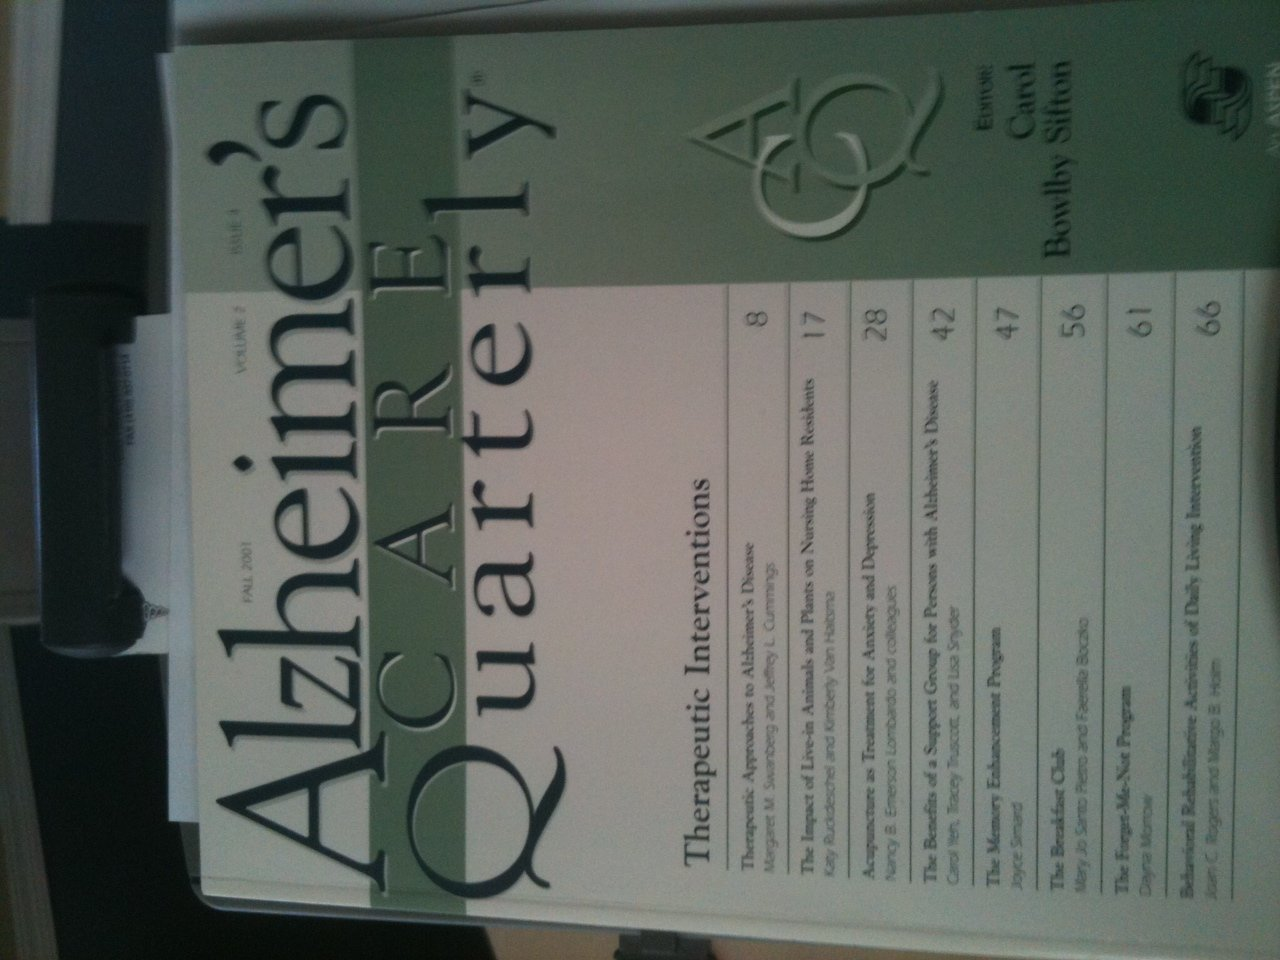 Read Online Alzheimer's Care Quarterly Journal: Theraputic Interventions: Fall 2001, Volume 2, Issue 4 (Alzheimer's Care Quarterly Journal, Fall 2001, Volume 2, Issue 4) ebook